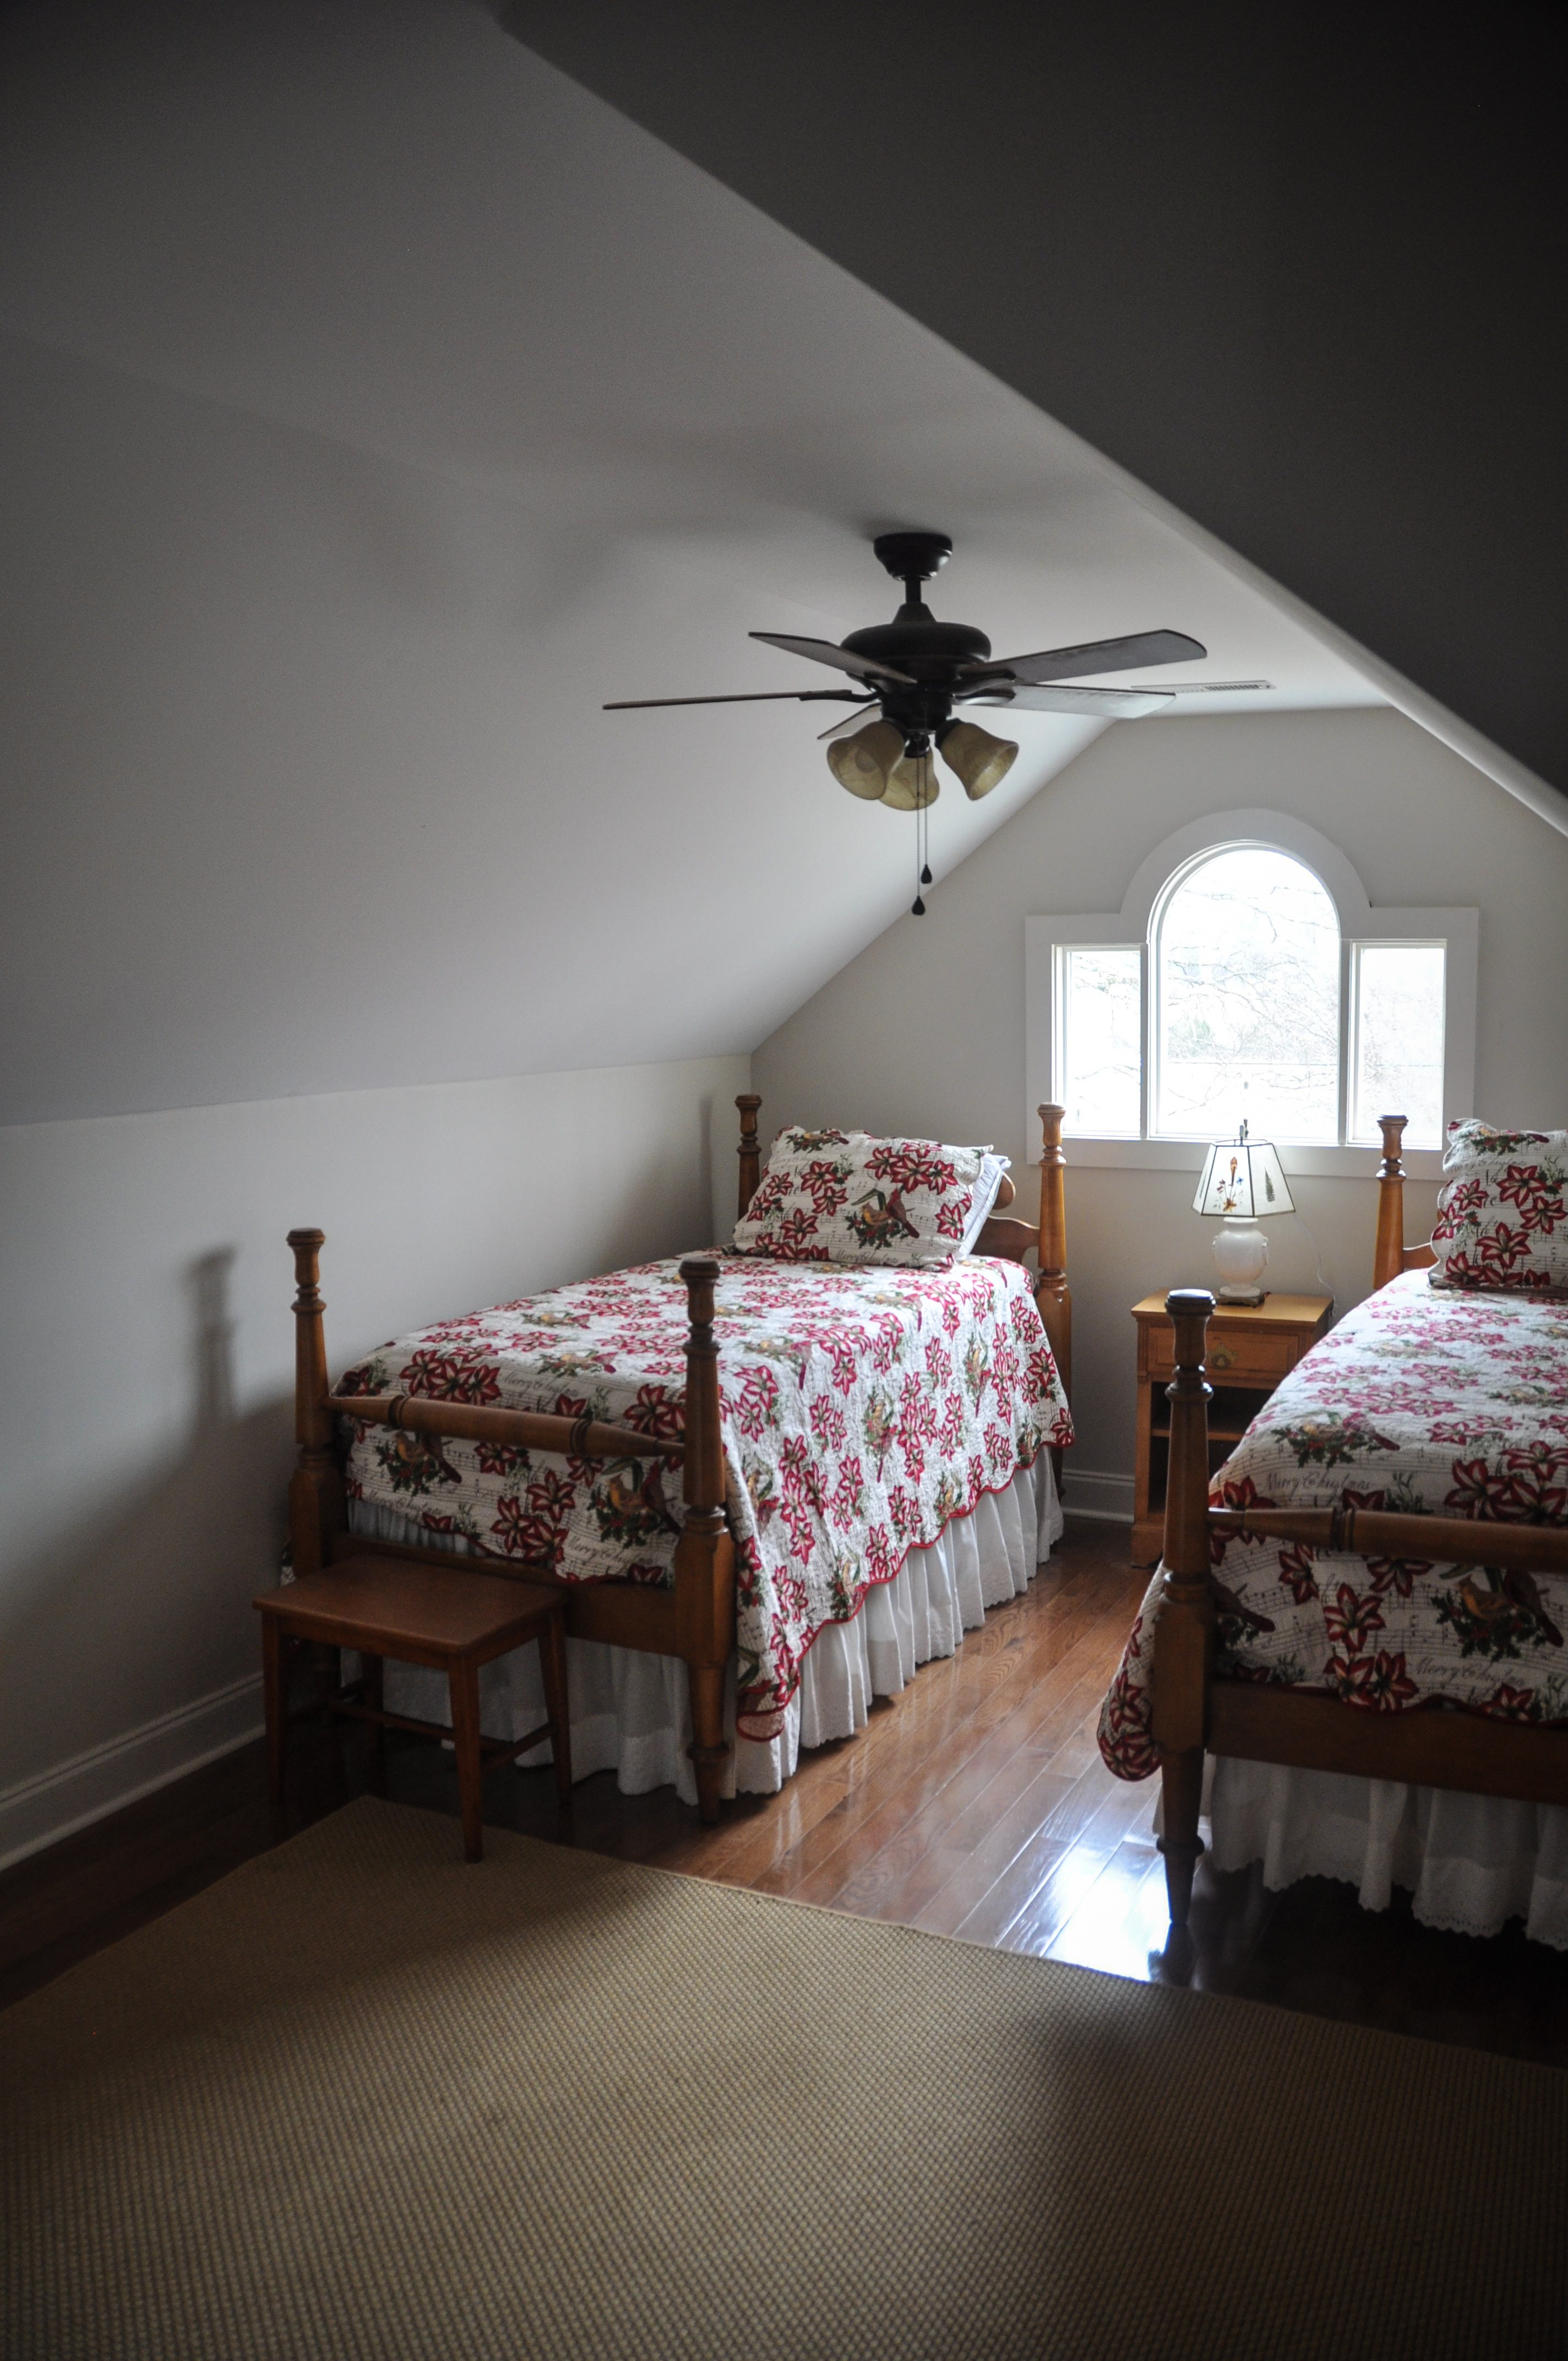 Twin beds with linens